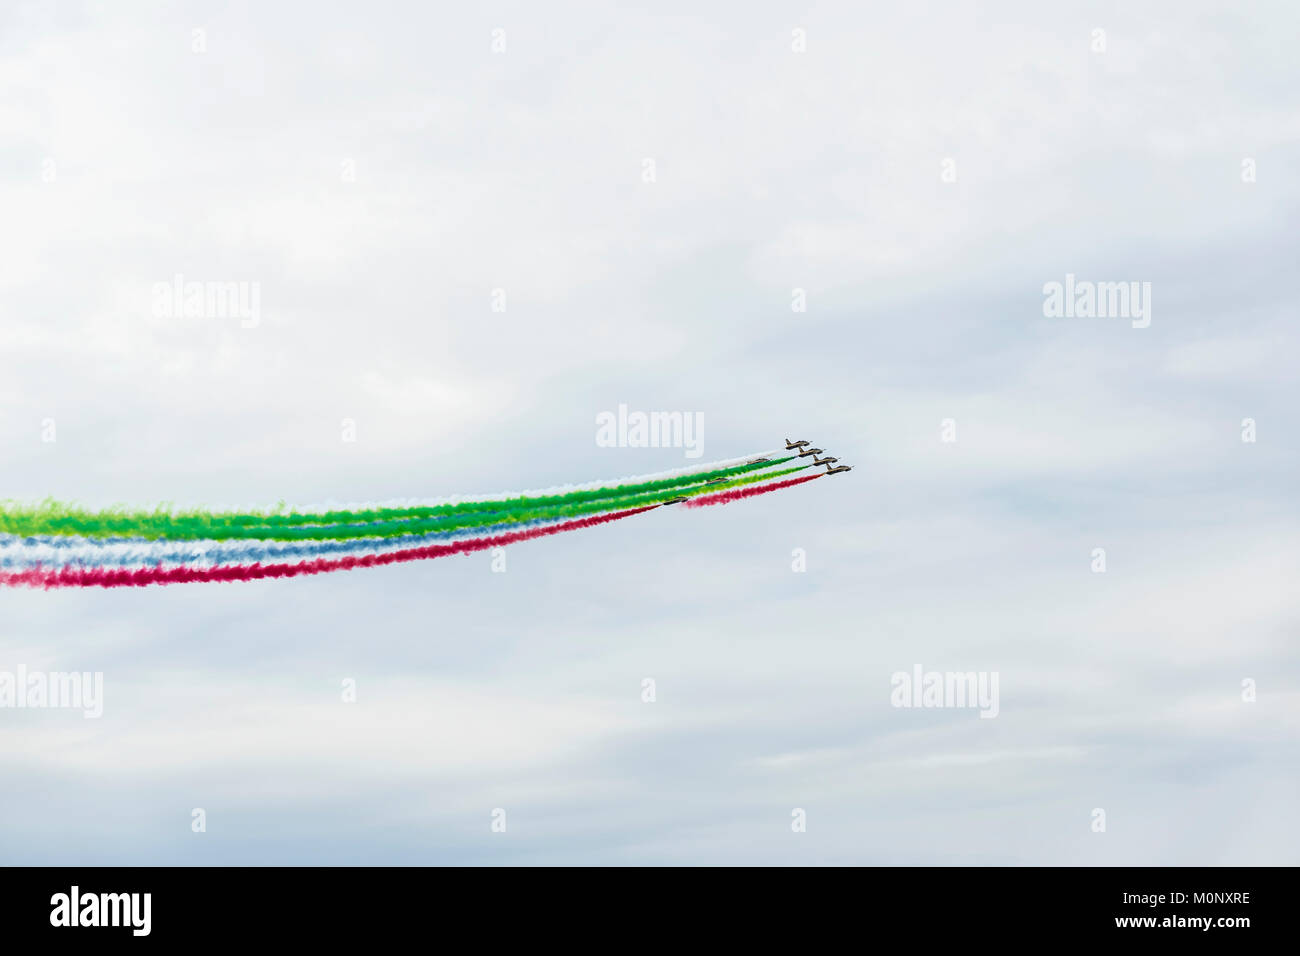 Airplanes on airshow with colorful bright trails of smoke against a blue sky, clouds. Aircraft, flying display and Stock Photo